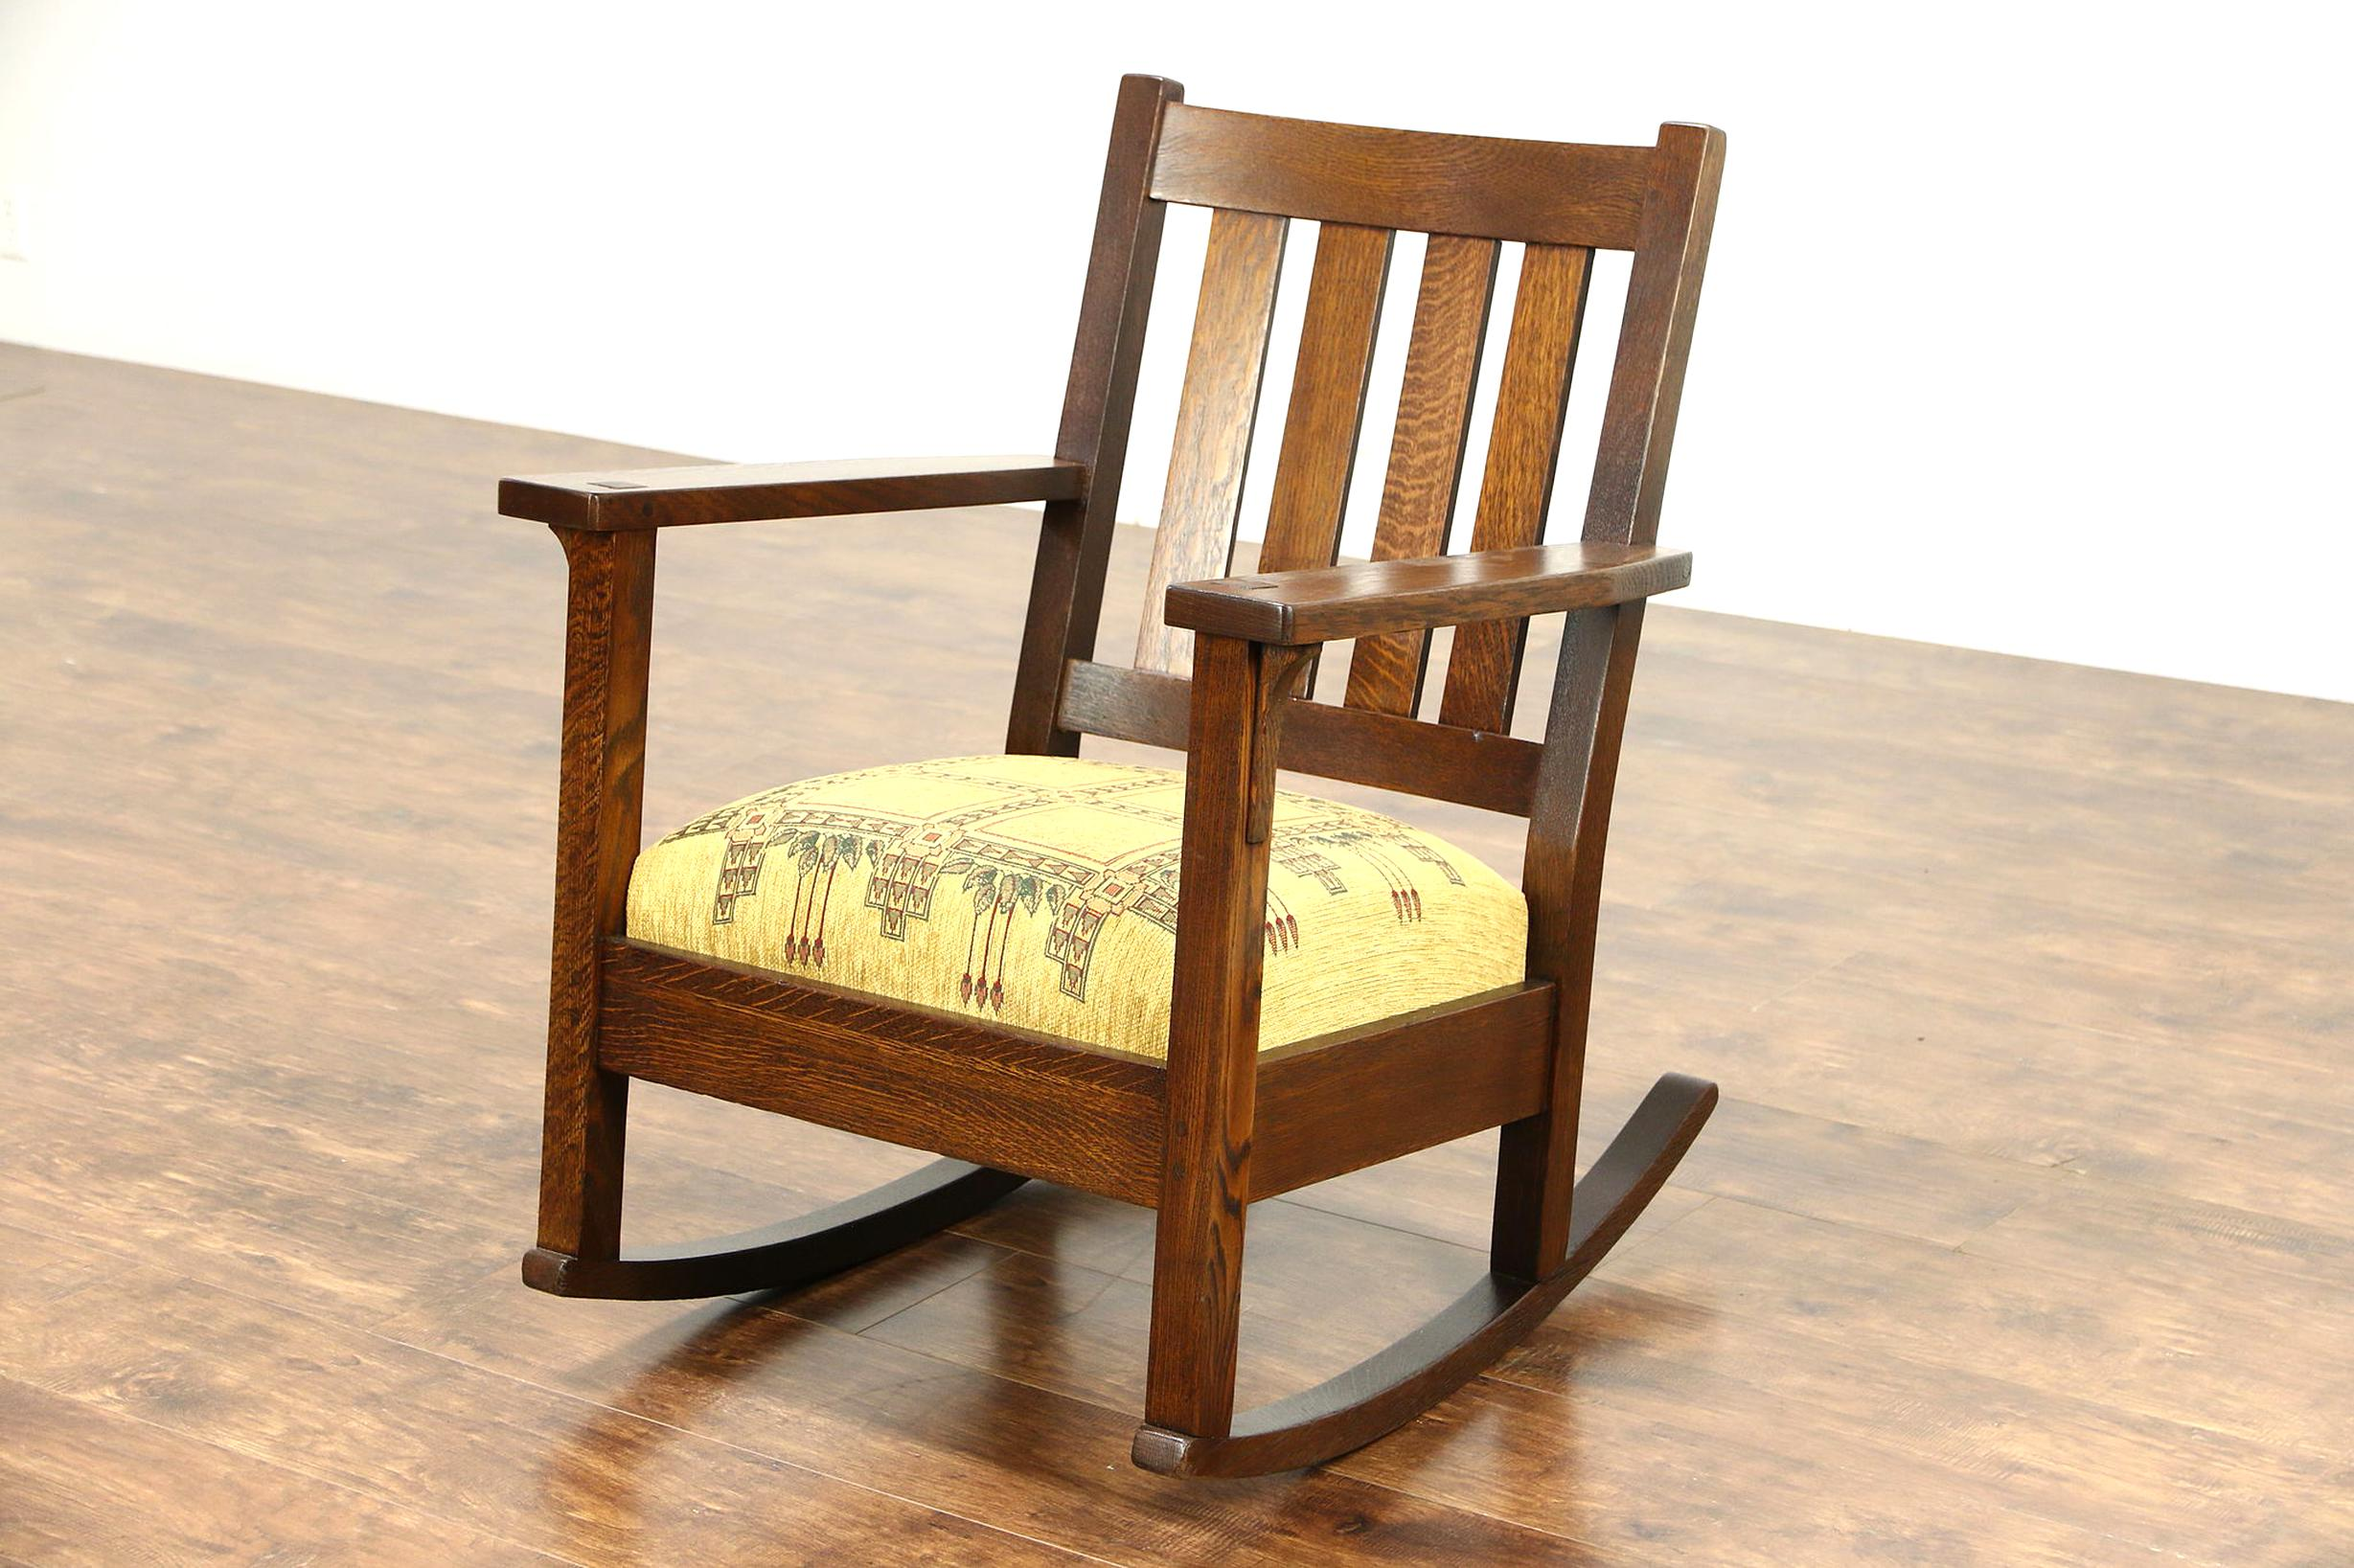 Awe Inspiring Oak Rocking Chair For Sale Only 2 Left At 60 Lamtechconsult Wood Chair Design Ideas Lamtechconsultcom